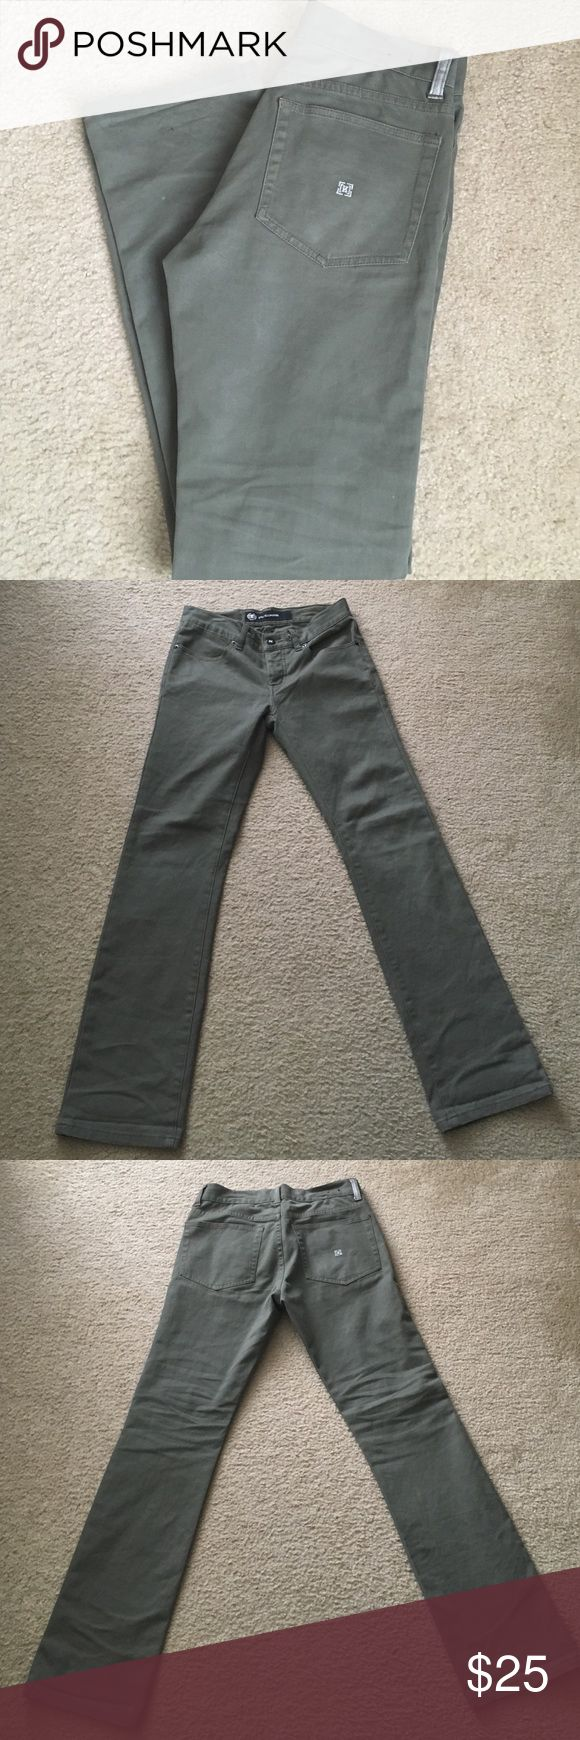 KR3W Erik Ellington Edition Sage like color Krew Twill jeans. Erik Ellington edition. Button fly. Slim fit. 29 inseam. KR3W Jeans Slim